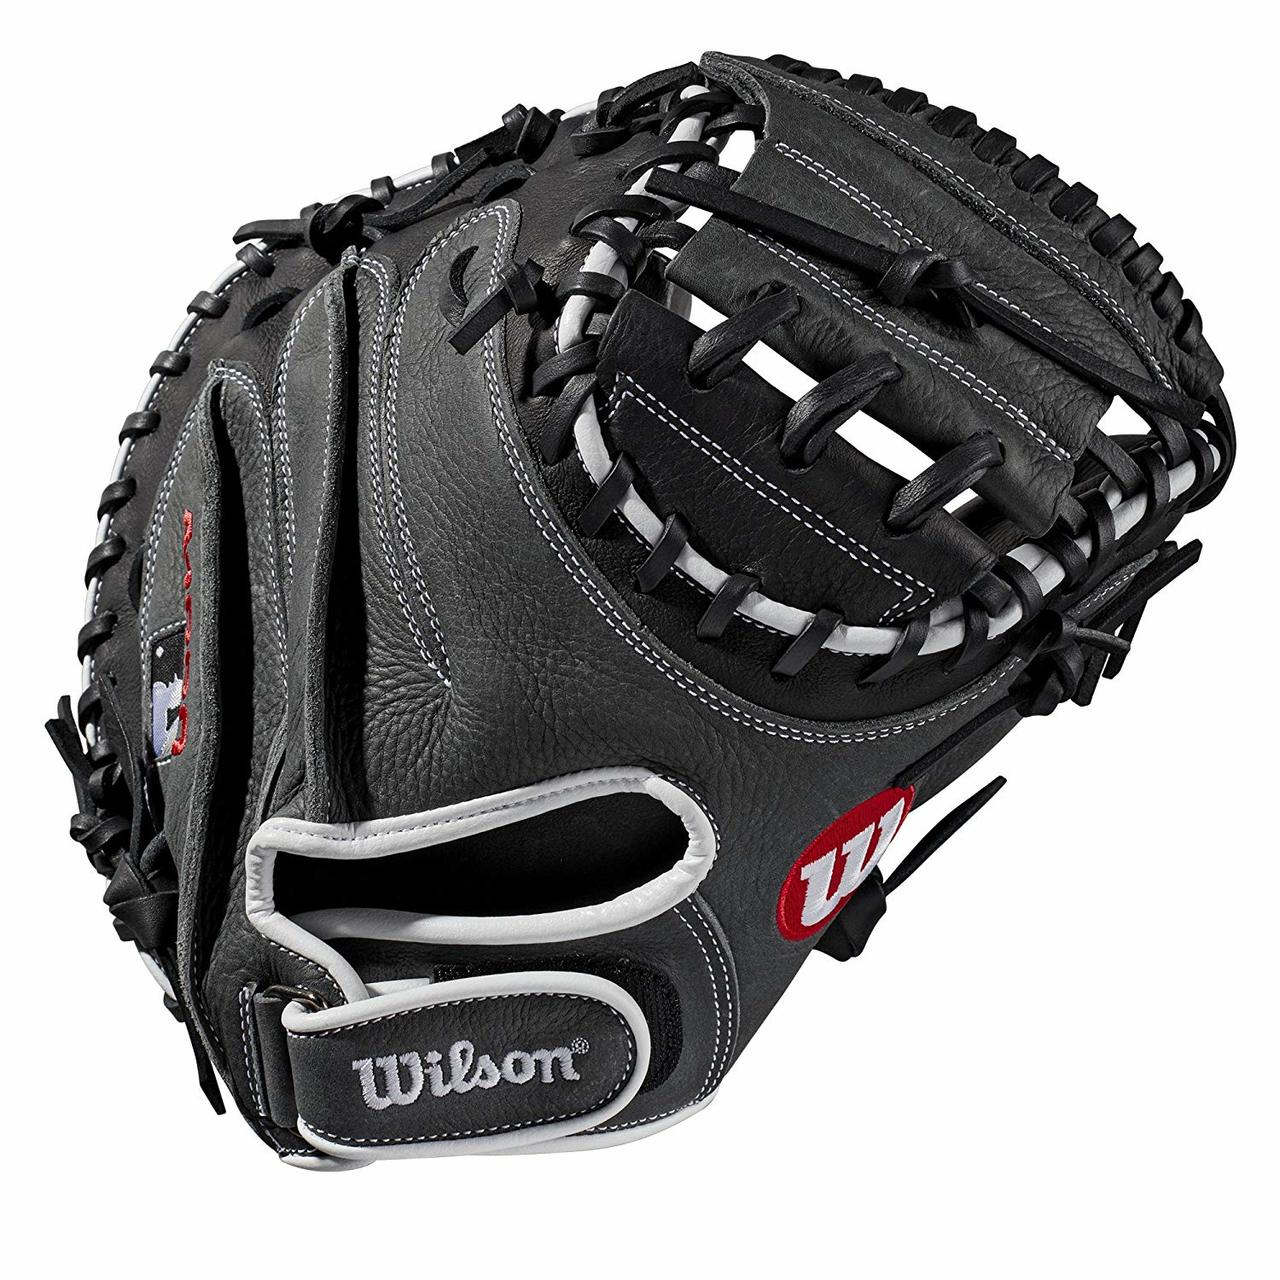 wilson-a1000-catchers-mitt-33-inch-right-hand-throw-cm33 WTA10RB19CM33-RightHandThrow Wilson 887768710897 33 catchers mitt Half moon web Grey and black Full-Grain leather